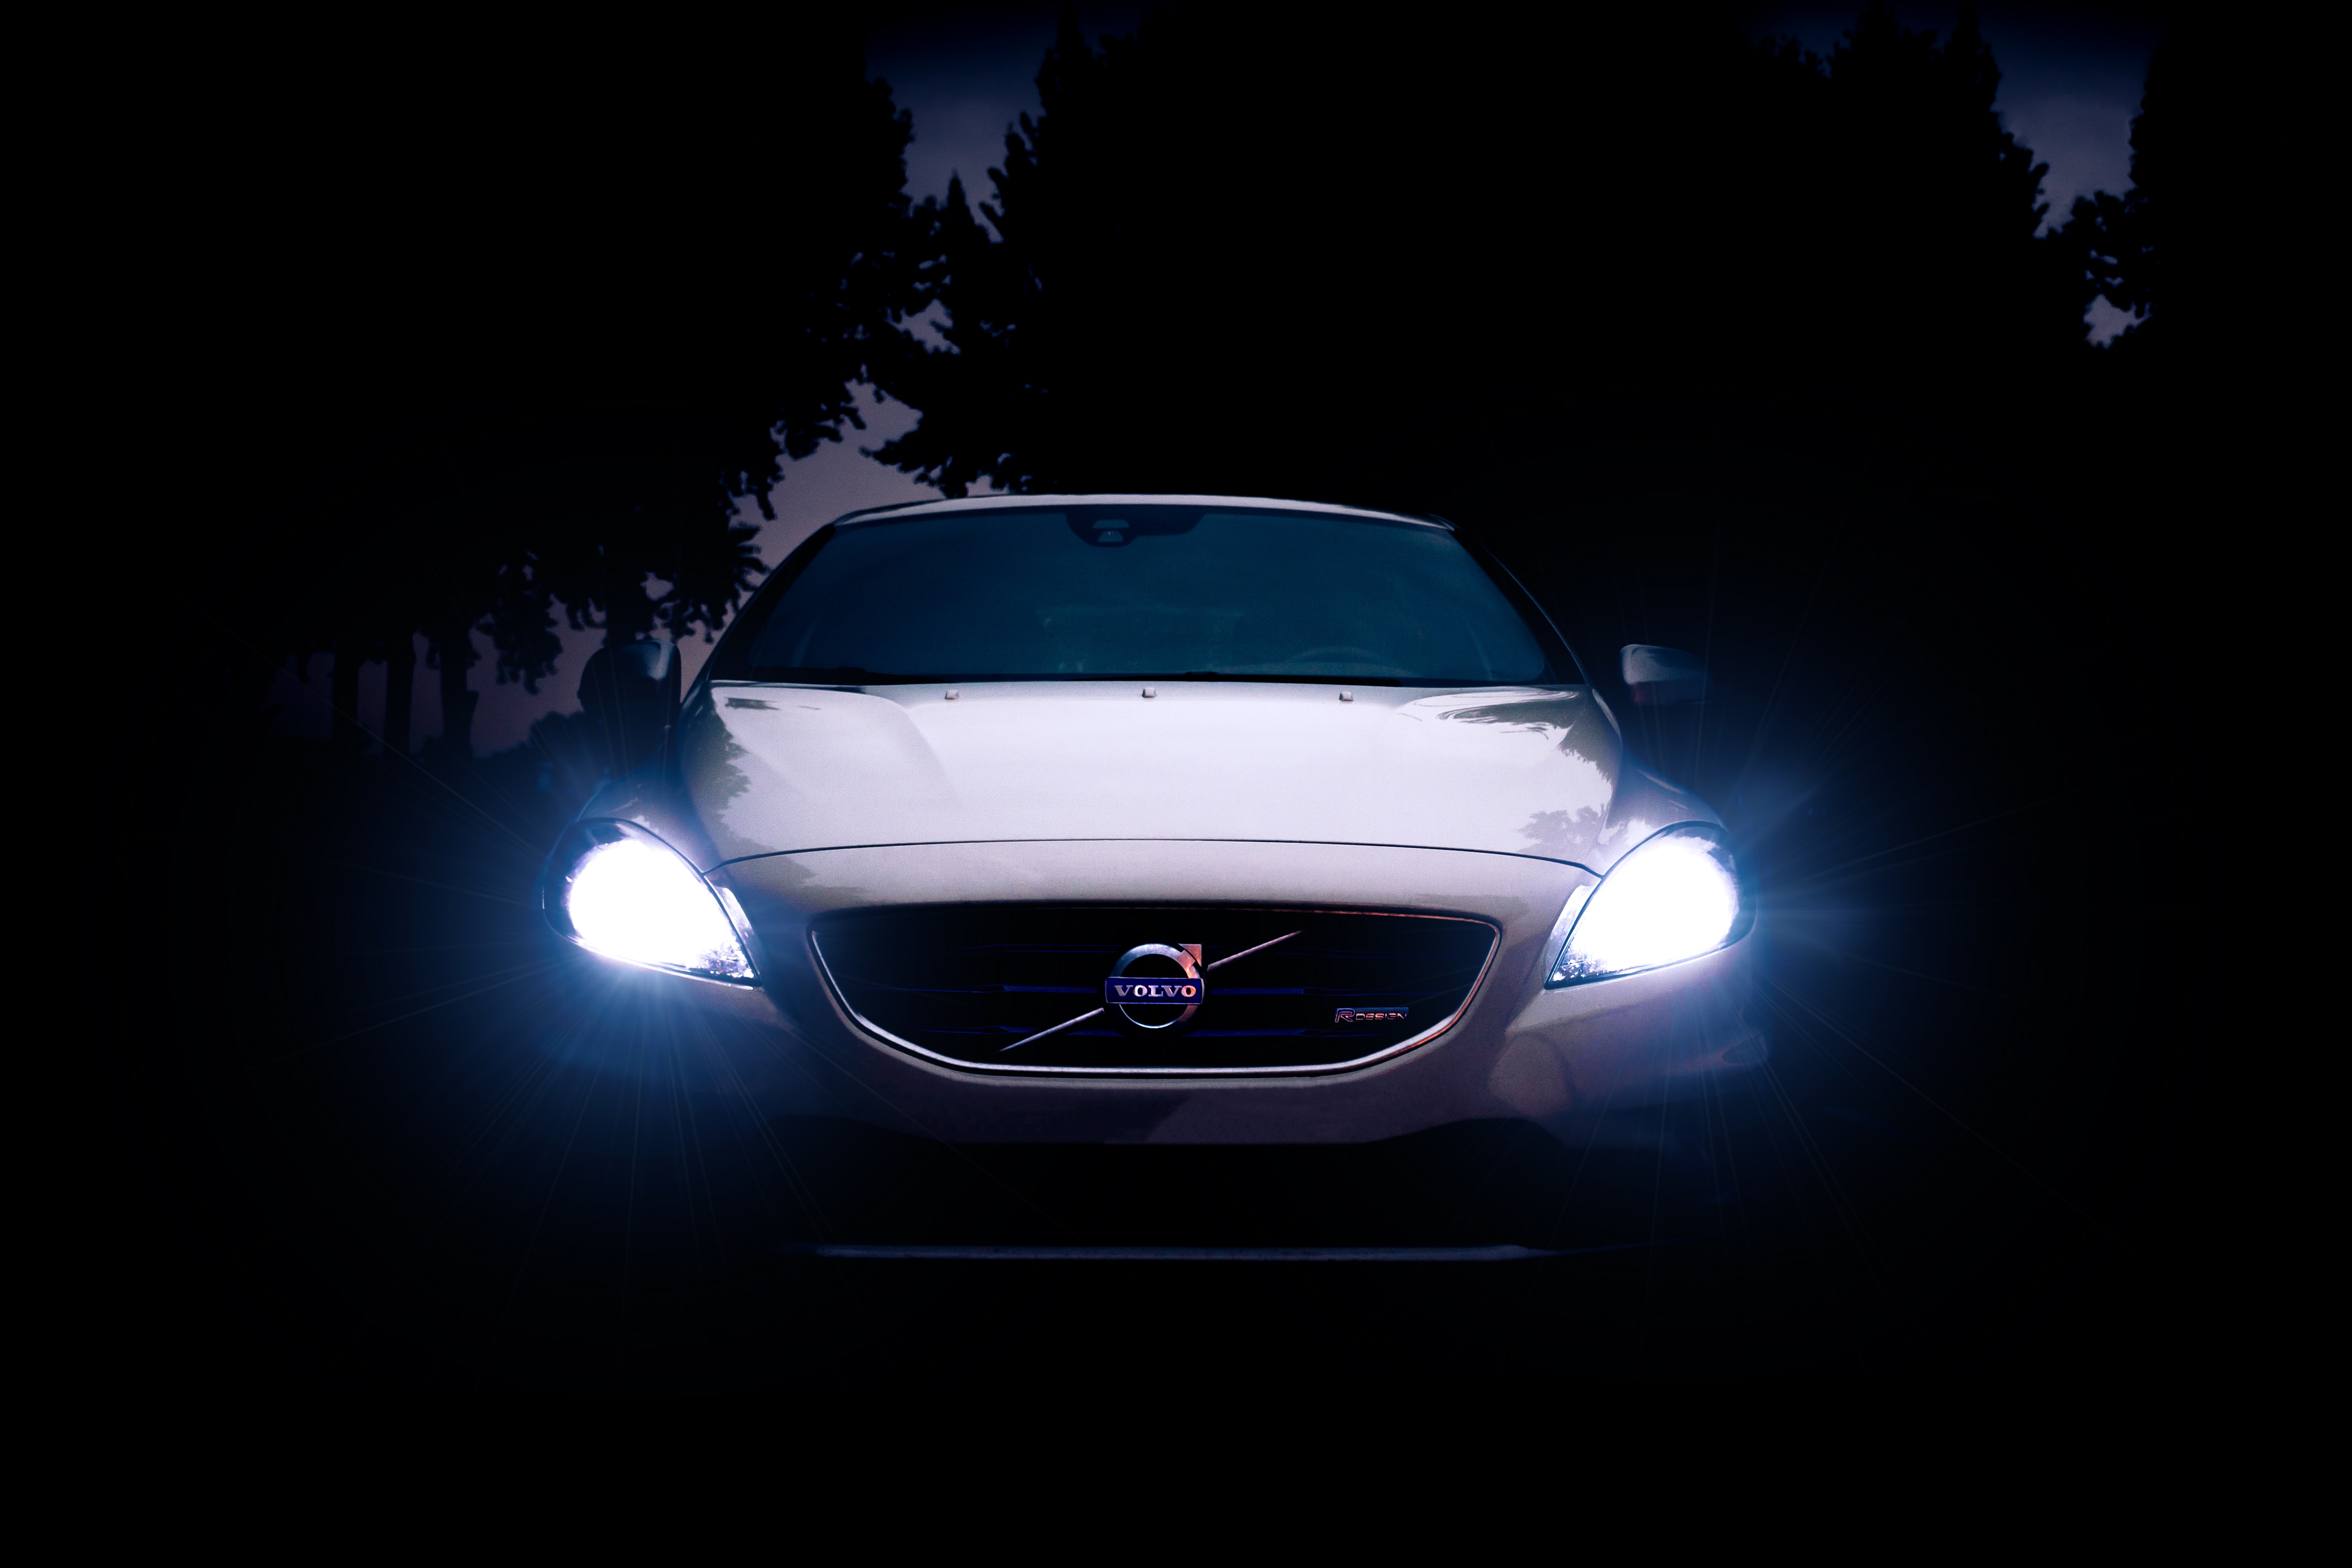 silver Volvo car with headlights on during night